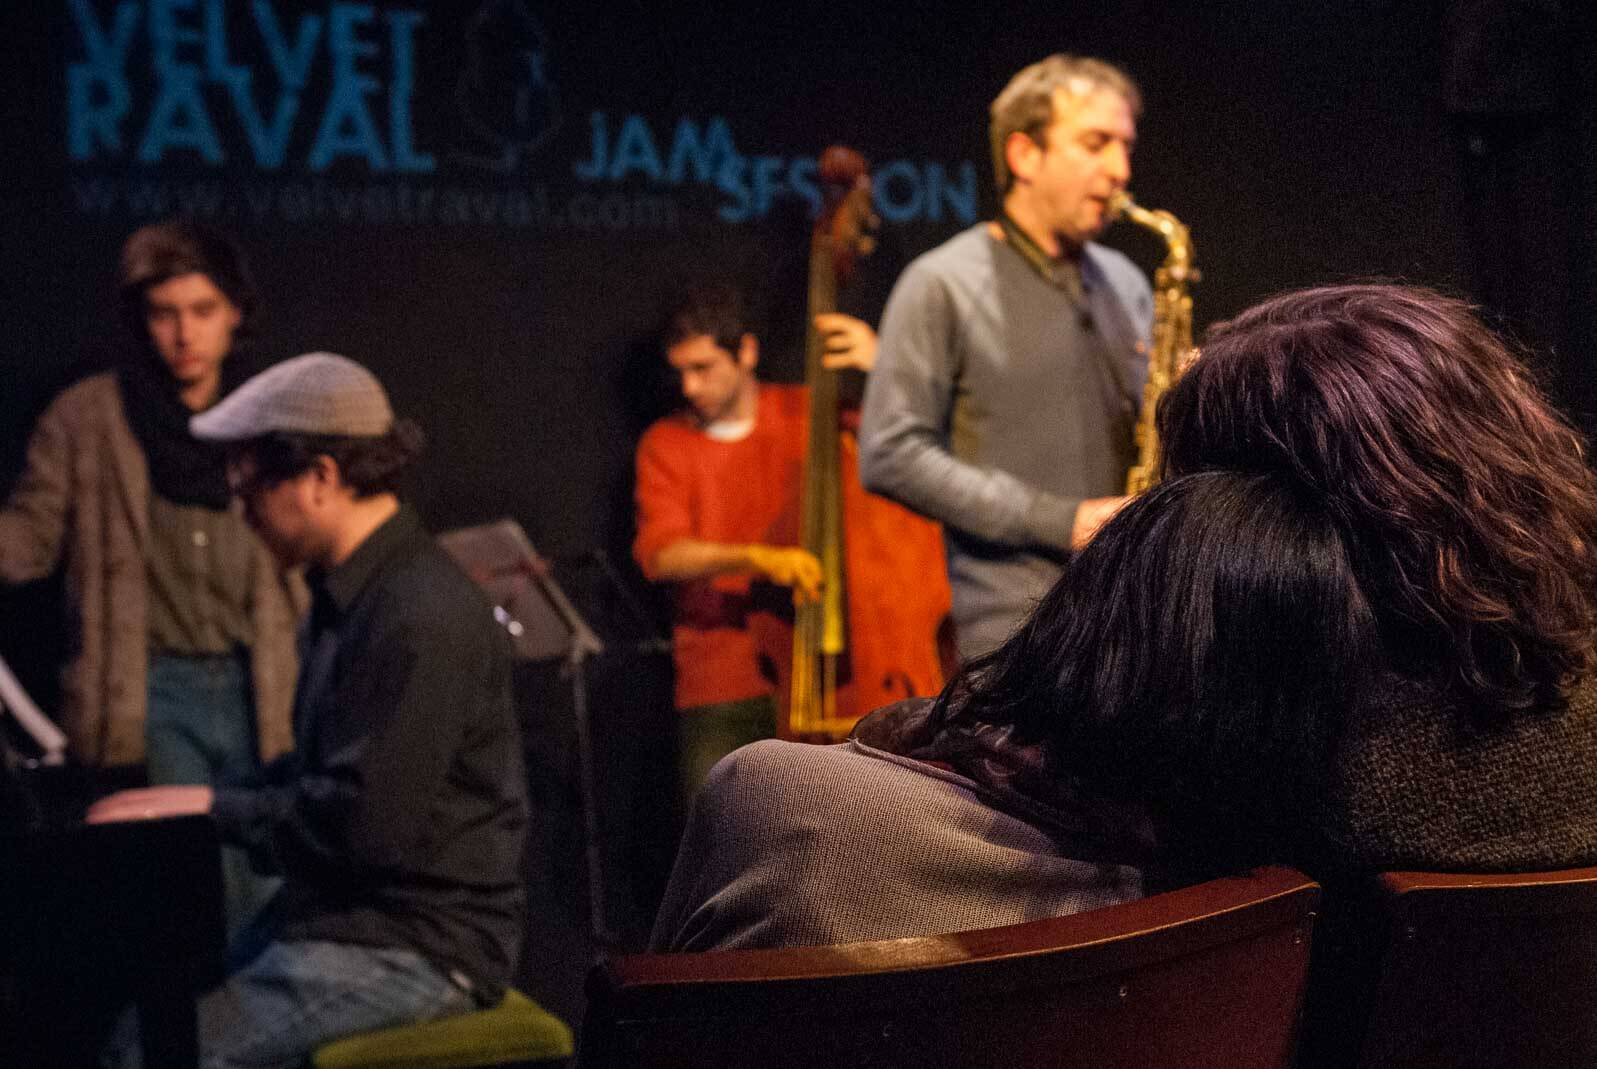 Fotos / Jam Session de 7 marzo 2016